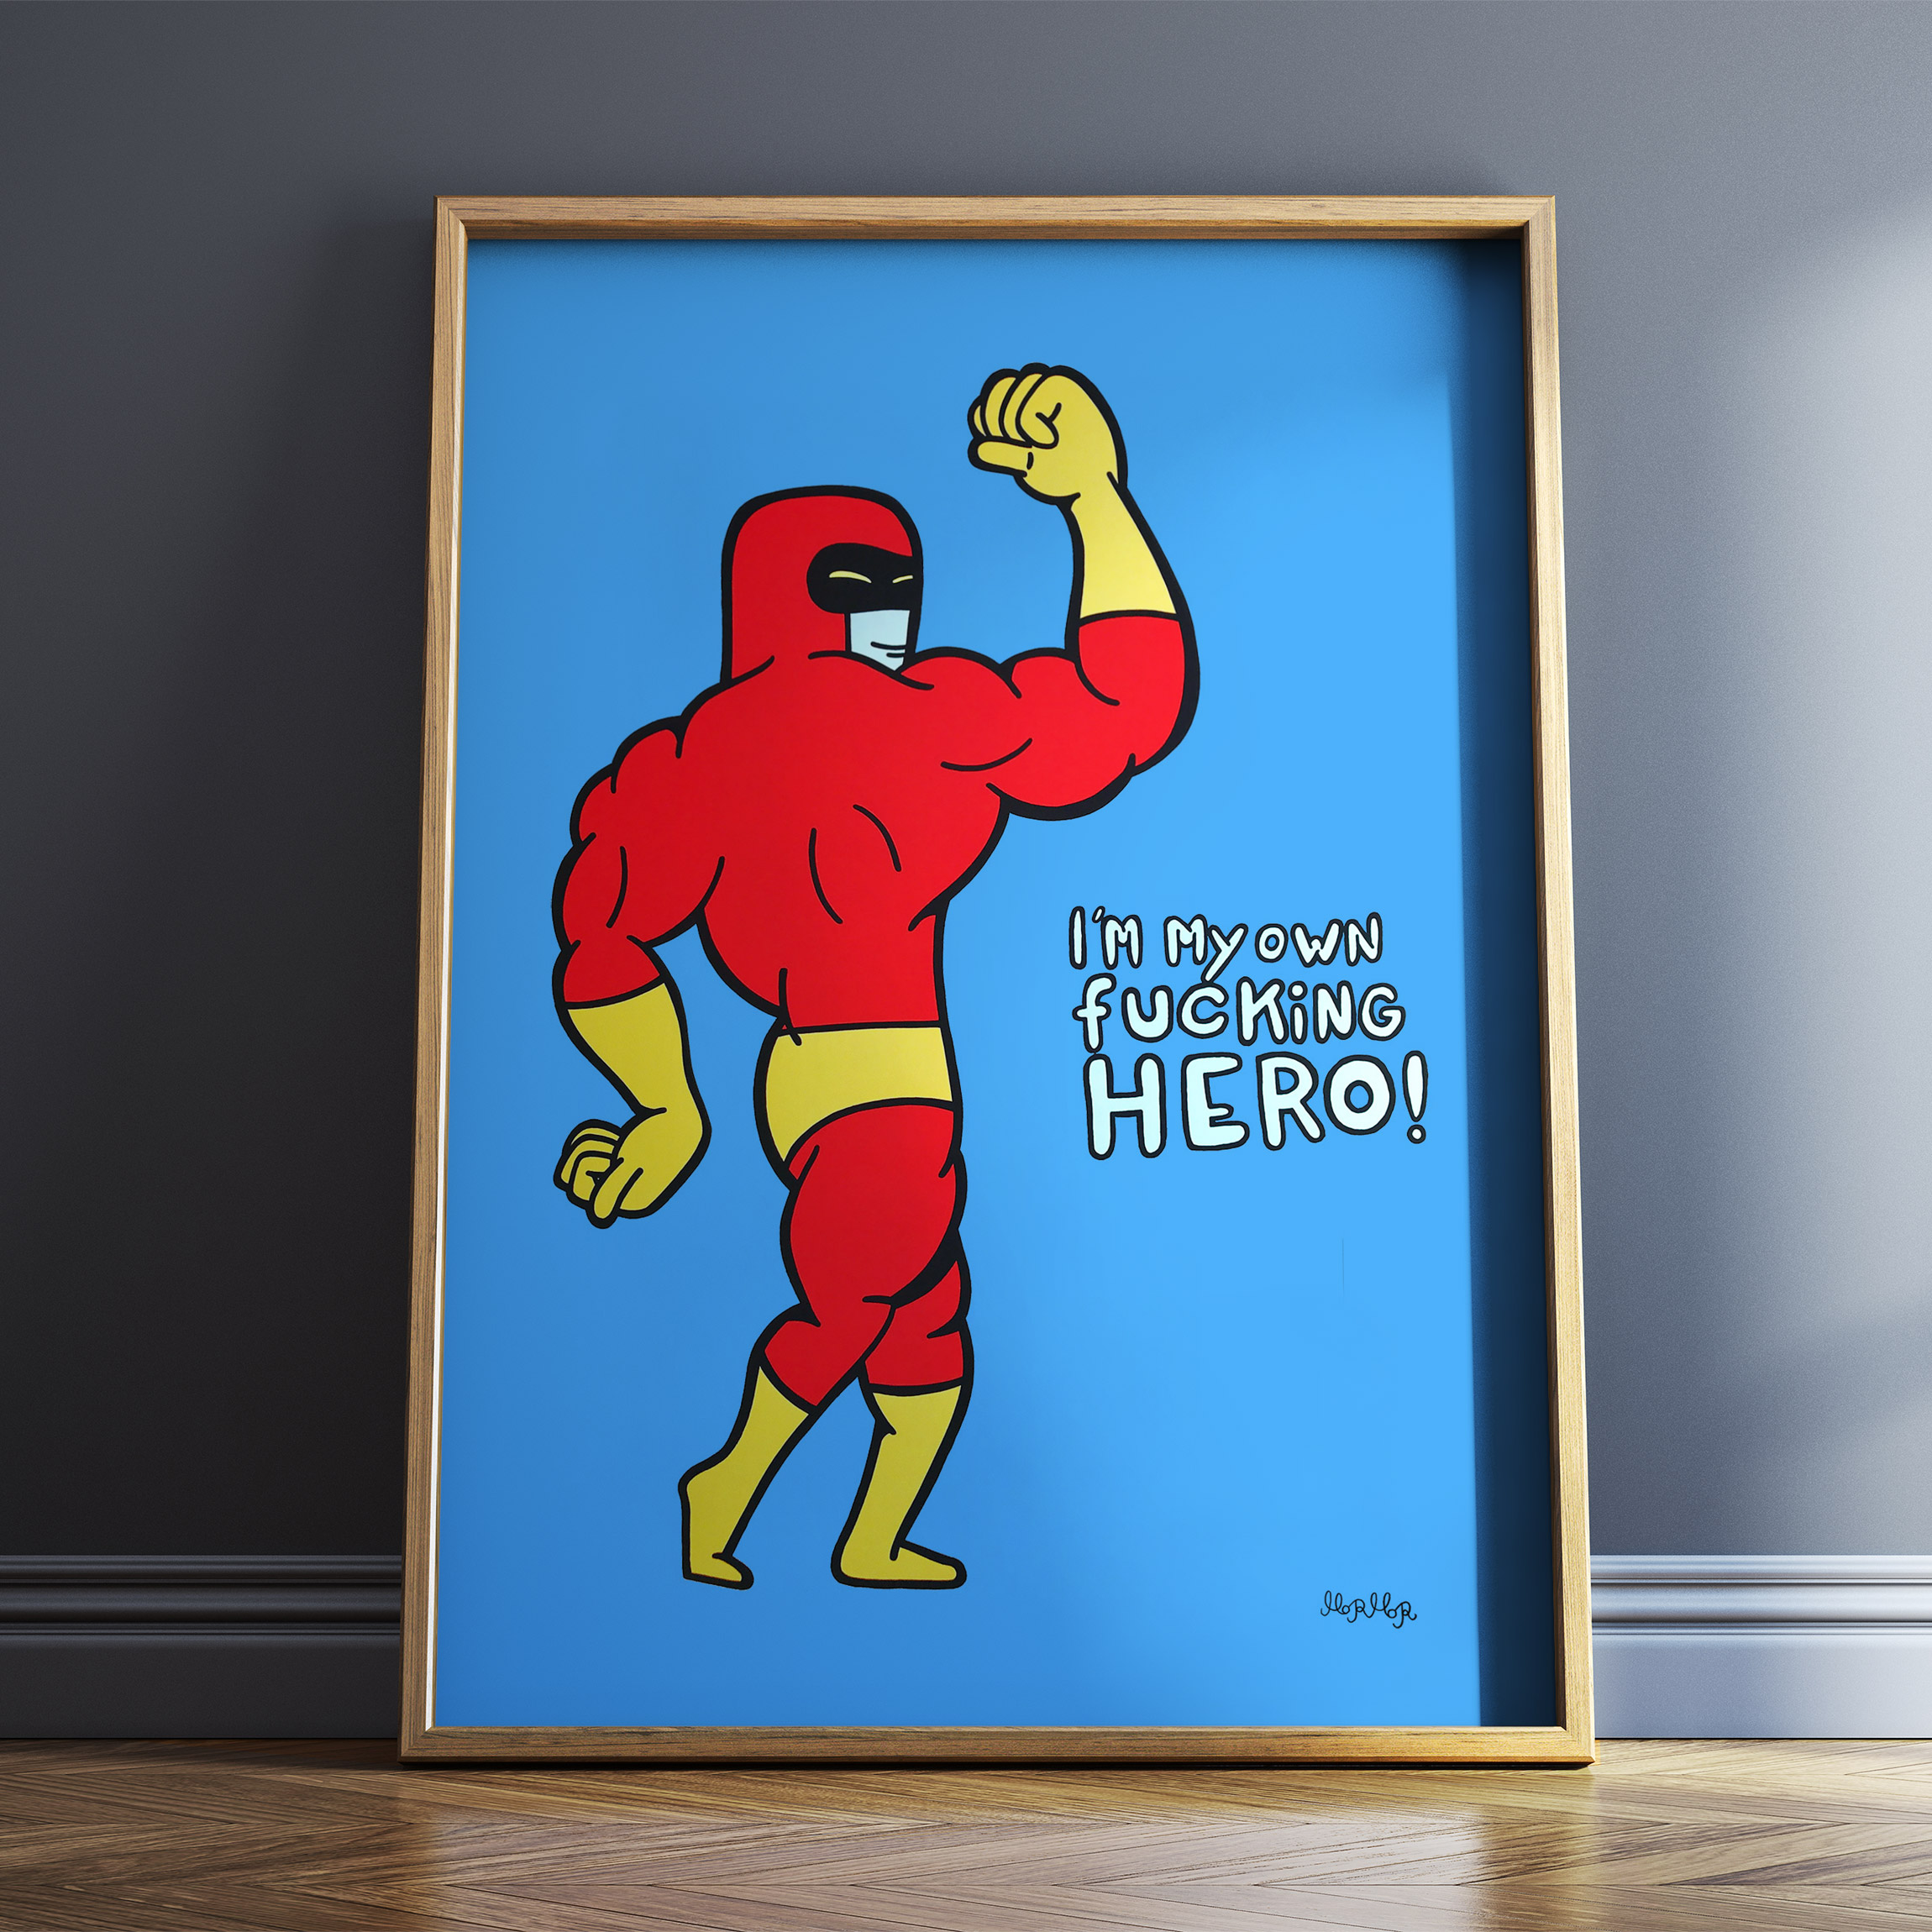 art-prints, giclee, colorful, family-friendly, graphical, pop, bodies, cartoons, blue, red, yellow, ink, paper, amusing, contemporary-art, copenhagen, danish, decorative, design, interior, interior-design, modern, modern-art, nordic, scandinavien, street-art, teenage, Buy original high quality art. Paintings, drawings, limited edition prints & posters by talented artists.